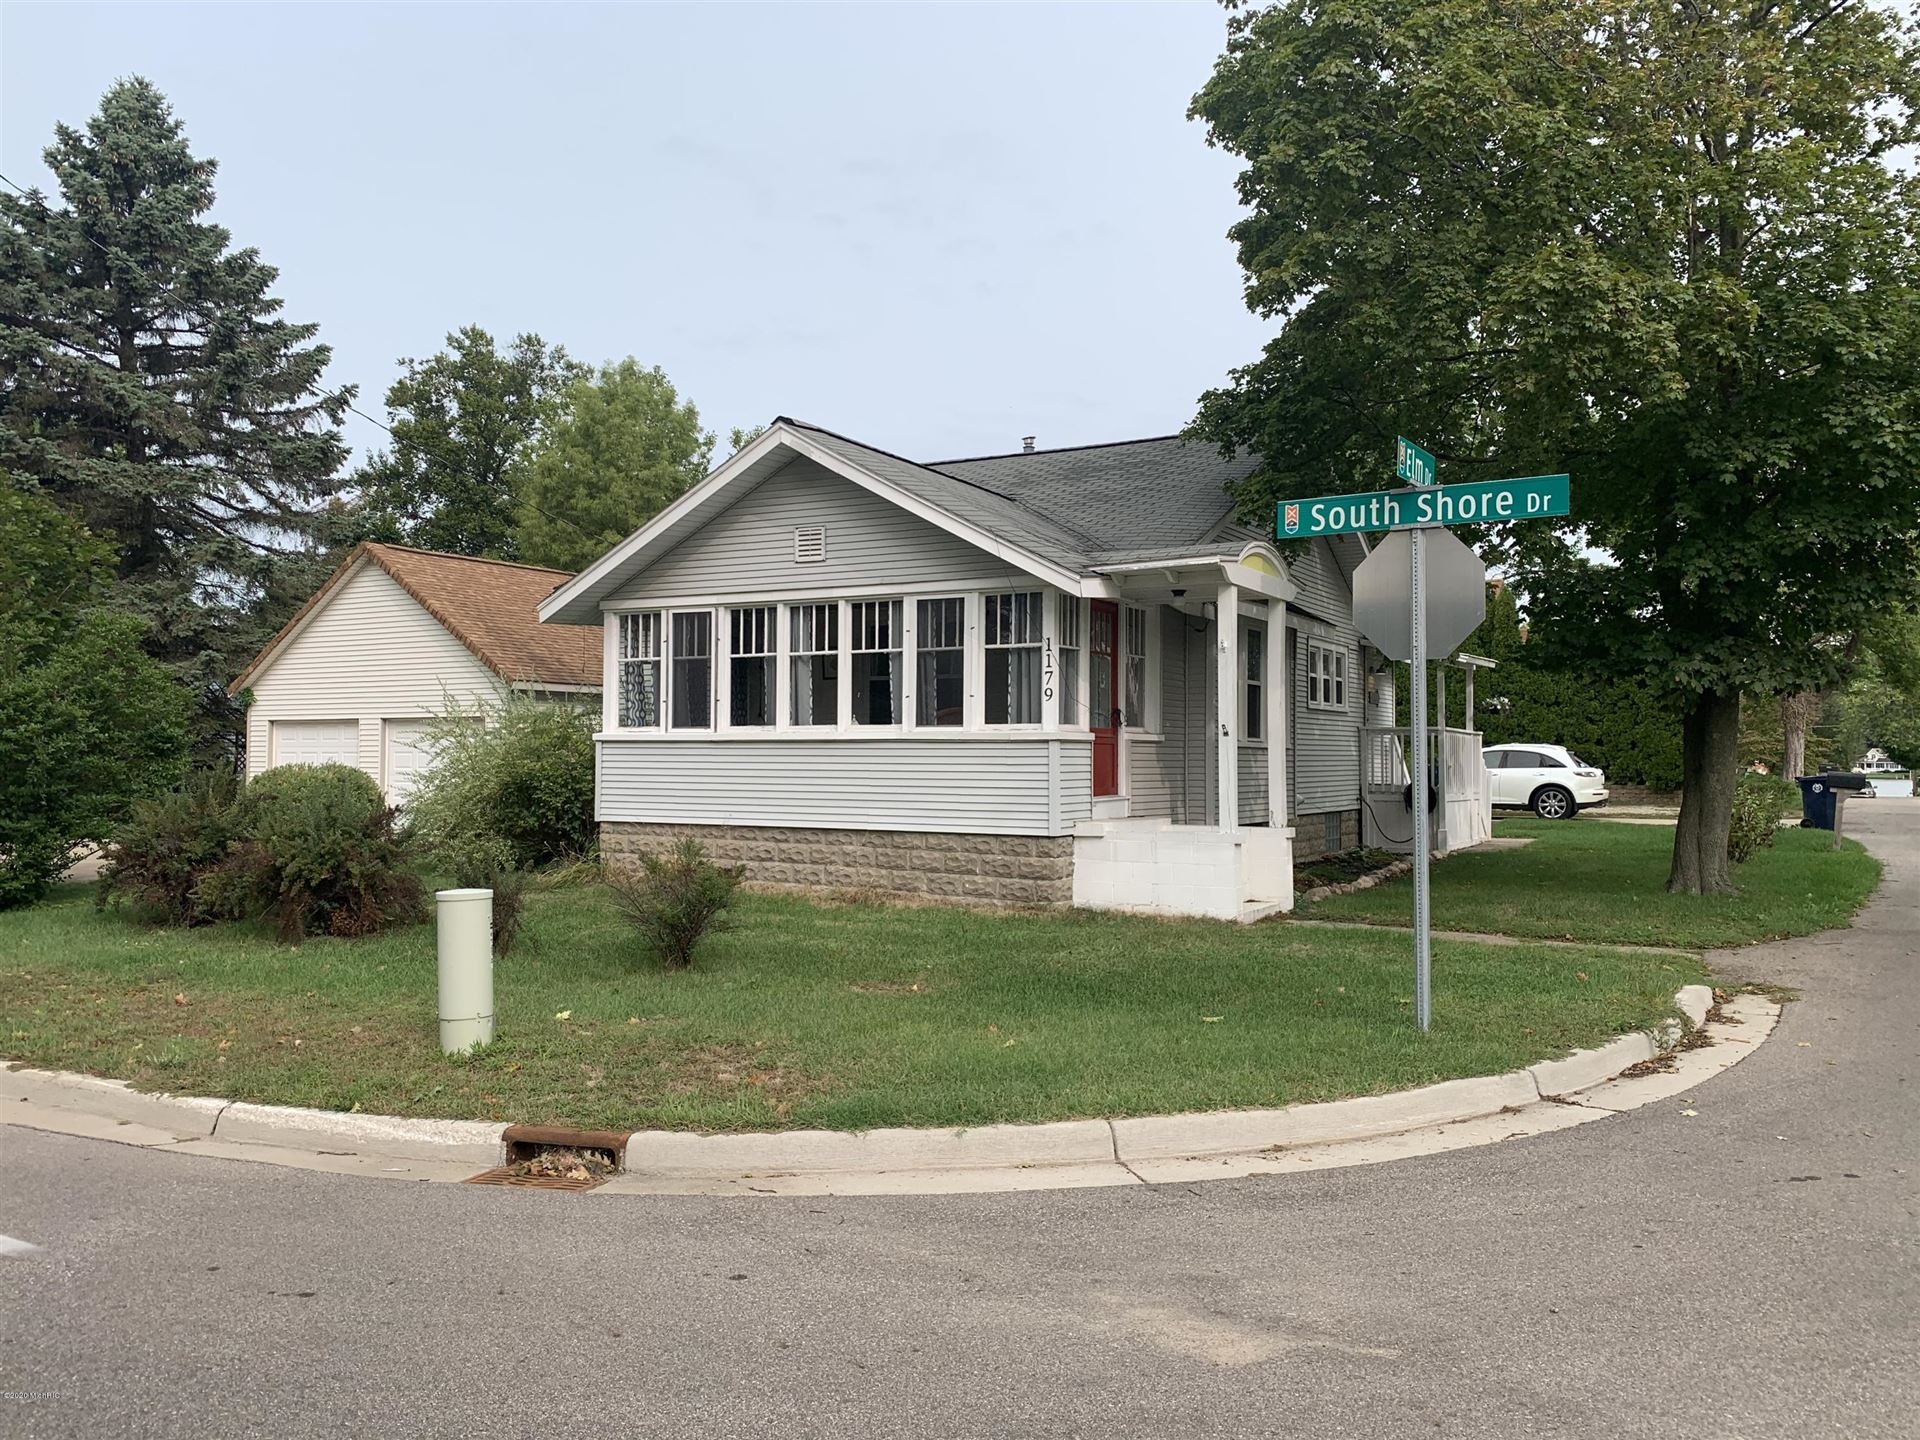 Photo of 1179 South Shore Drive, Holland, MI 49423 (MLS # 20038261)